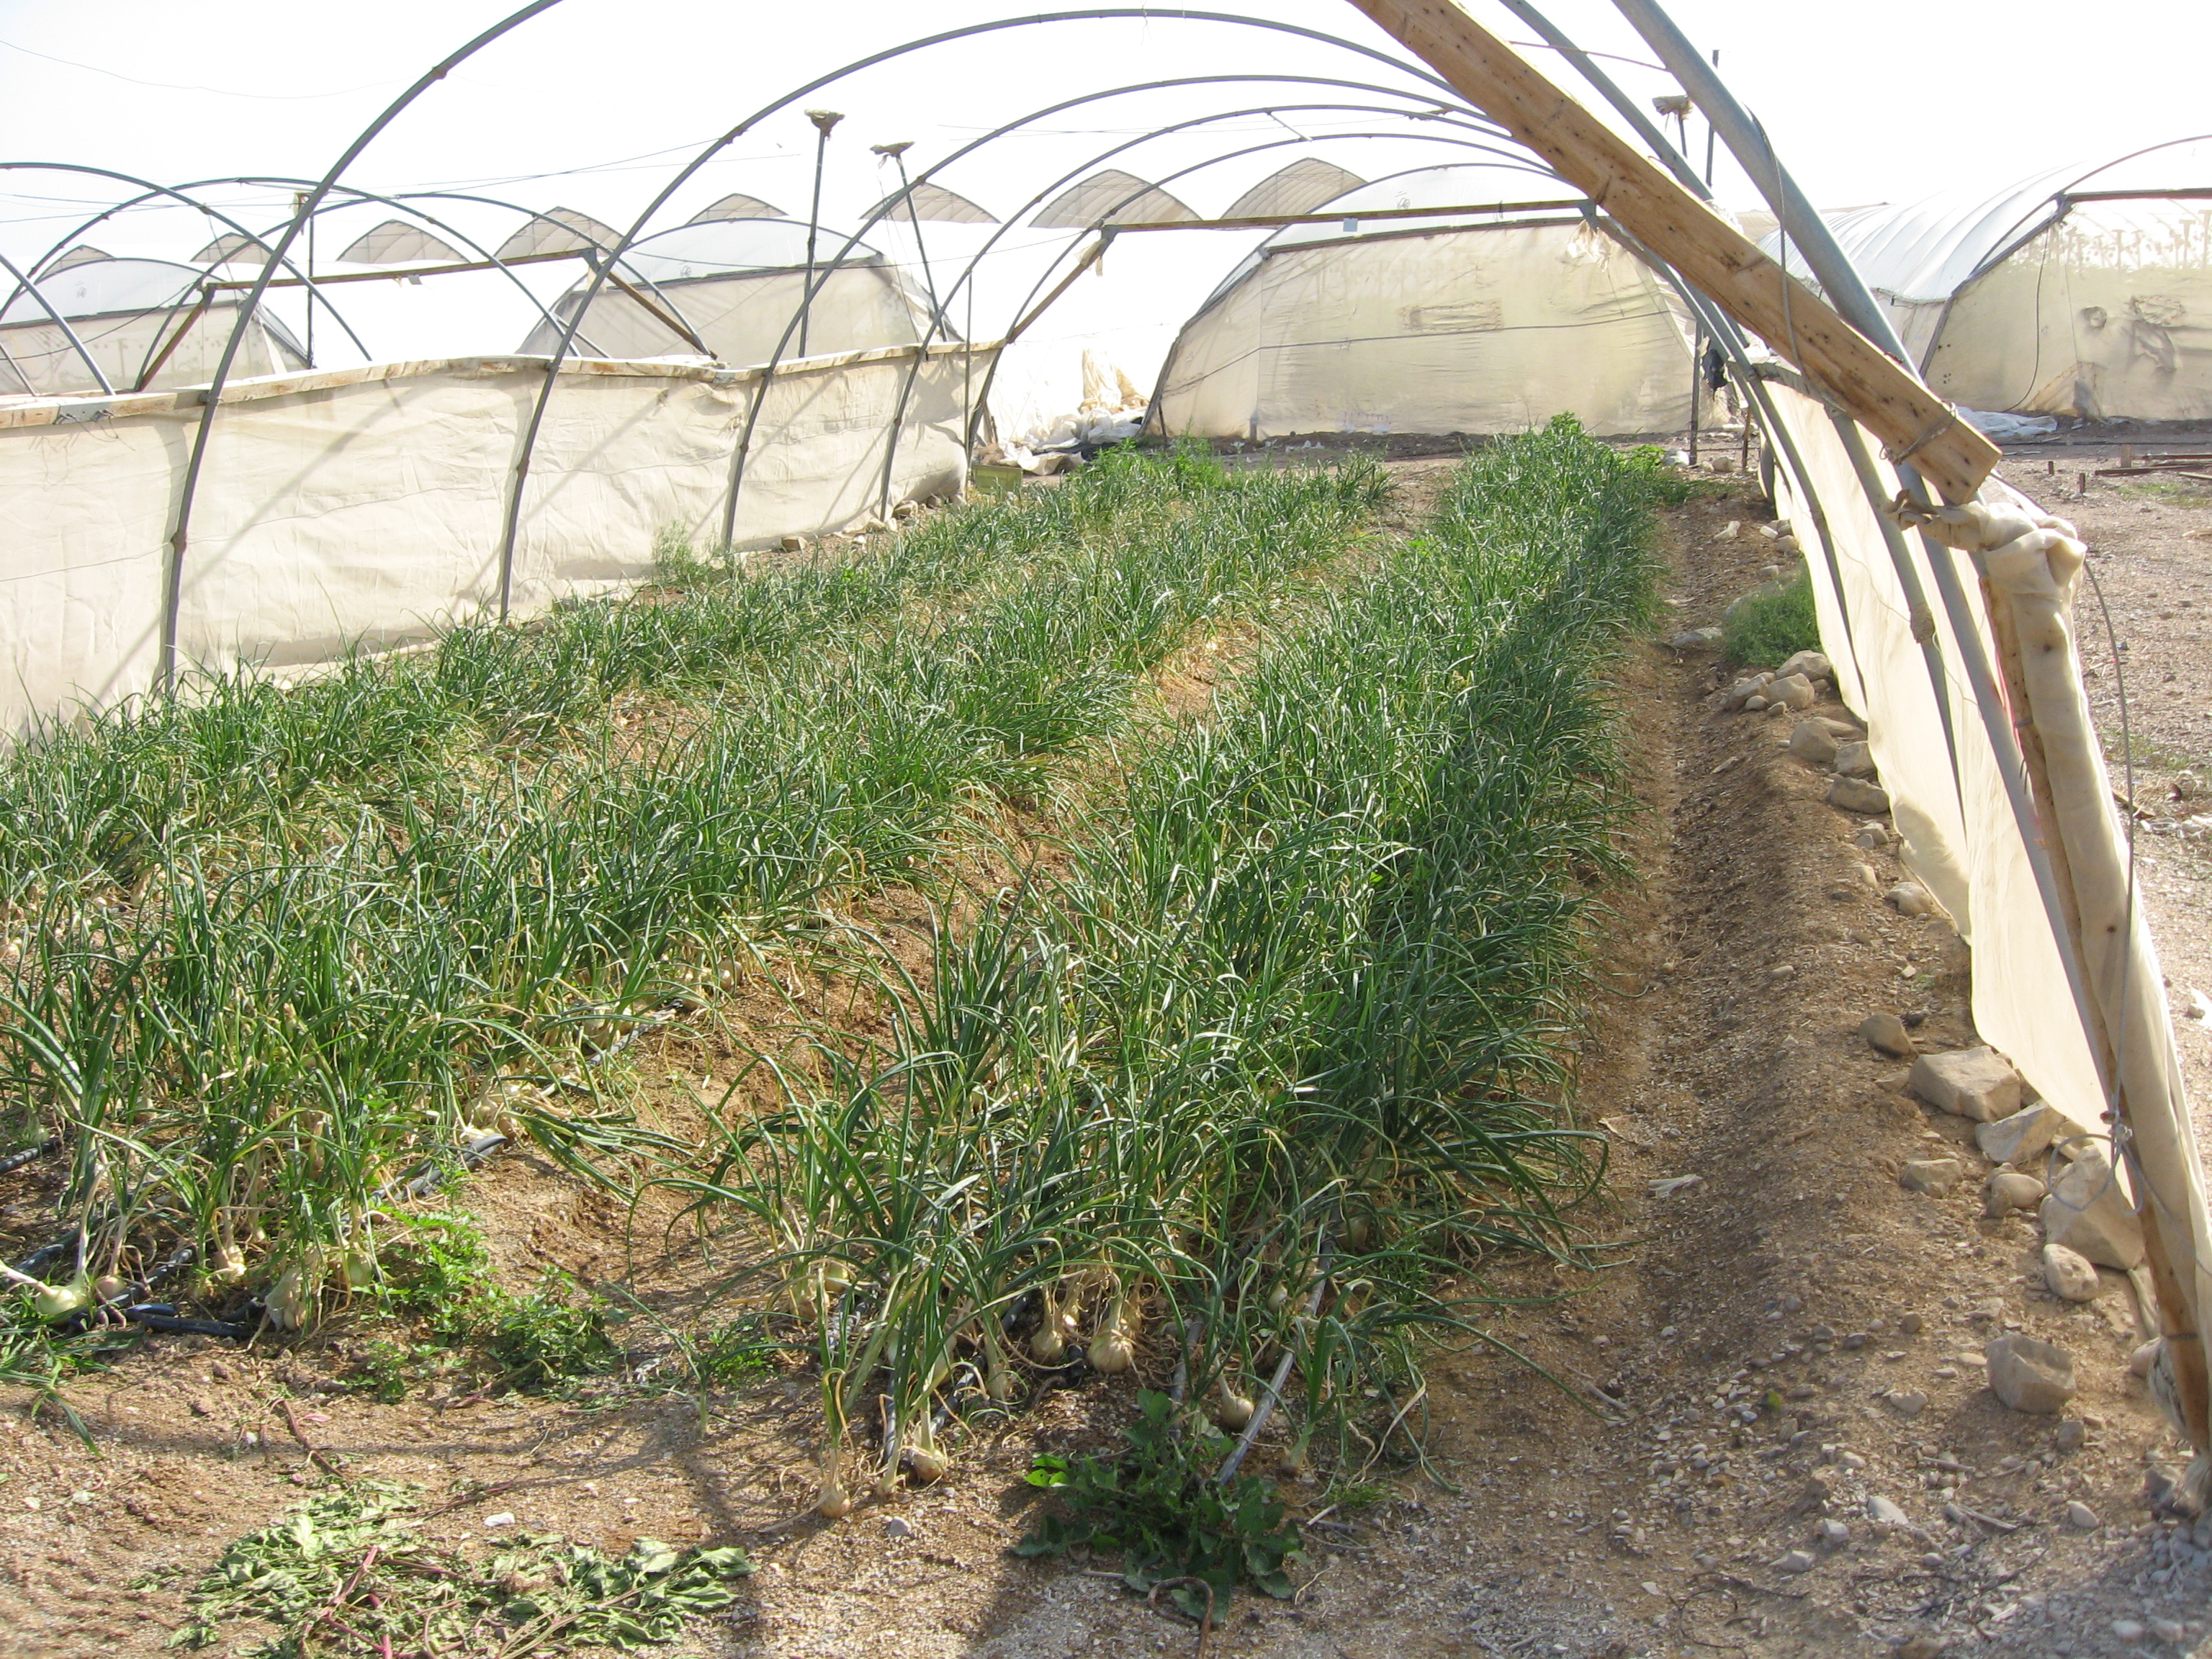 Fields cultivated for Agrexco in the illegal settlement of Kalia - Photo taken by Corporate Watch researchers 26/01/2013